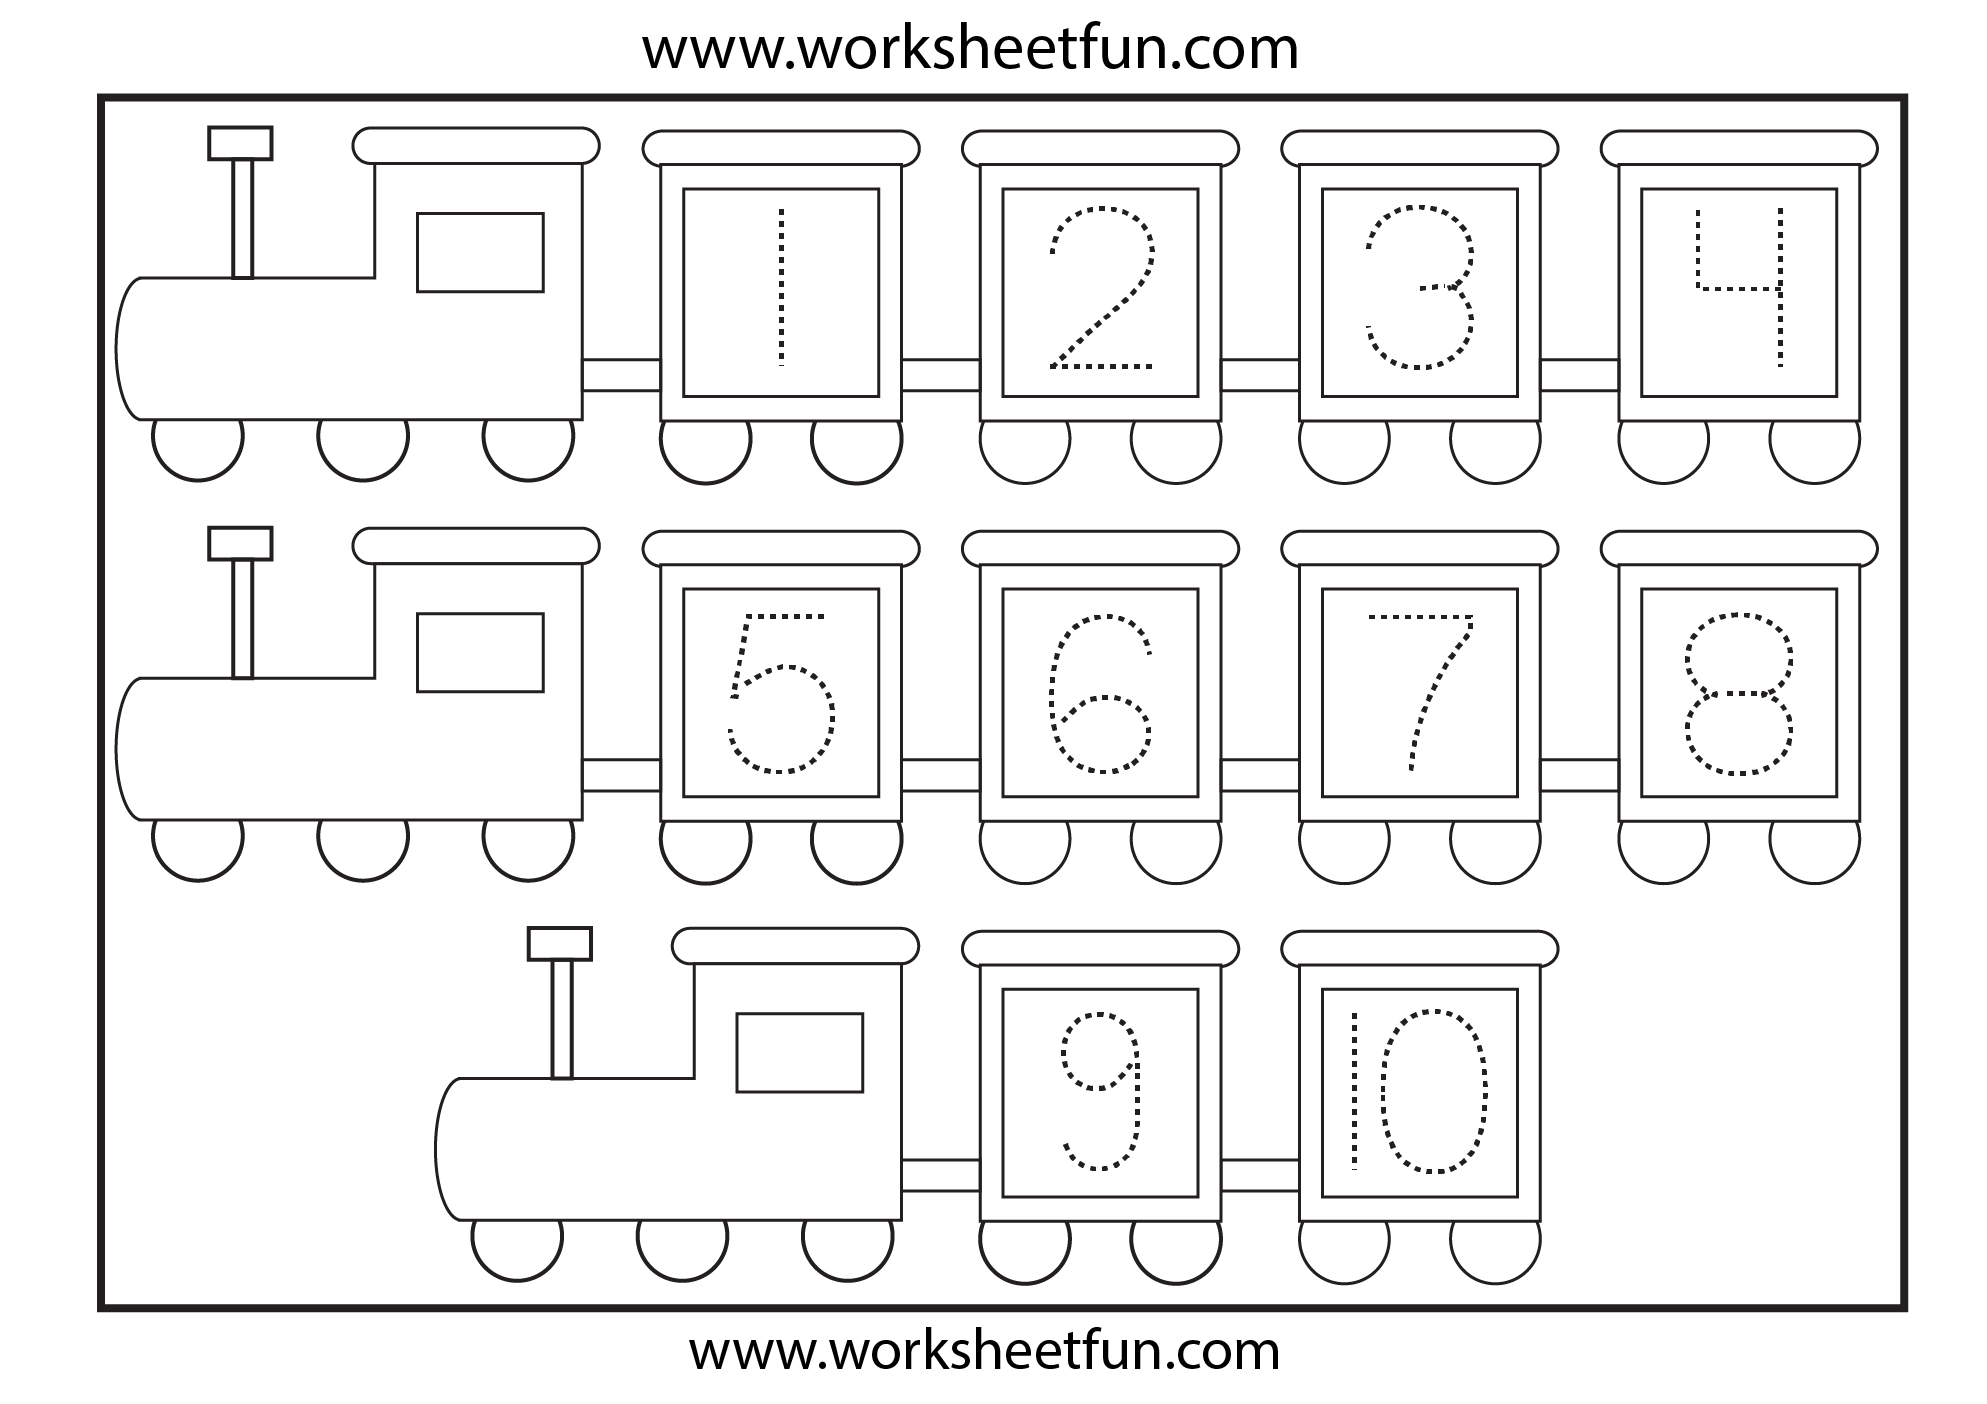 Worksheet Free Printable Number Worksheets 1-10 1000 images about number worksheets on pinterest to work year 2 and letter tracing